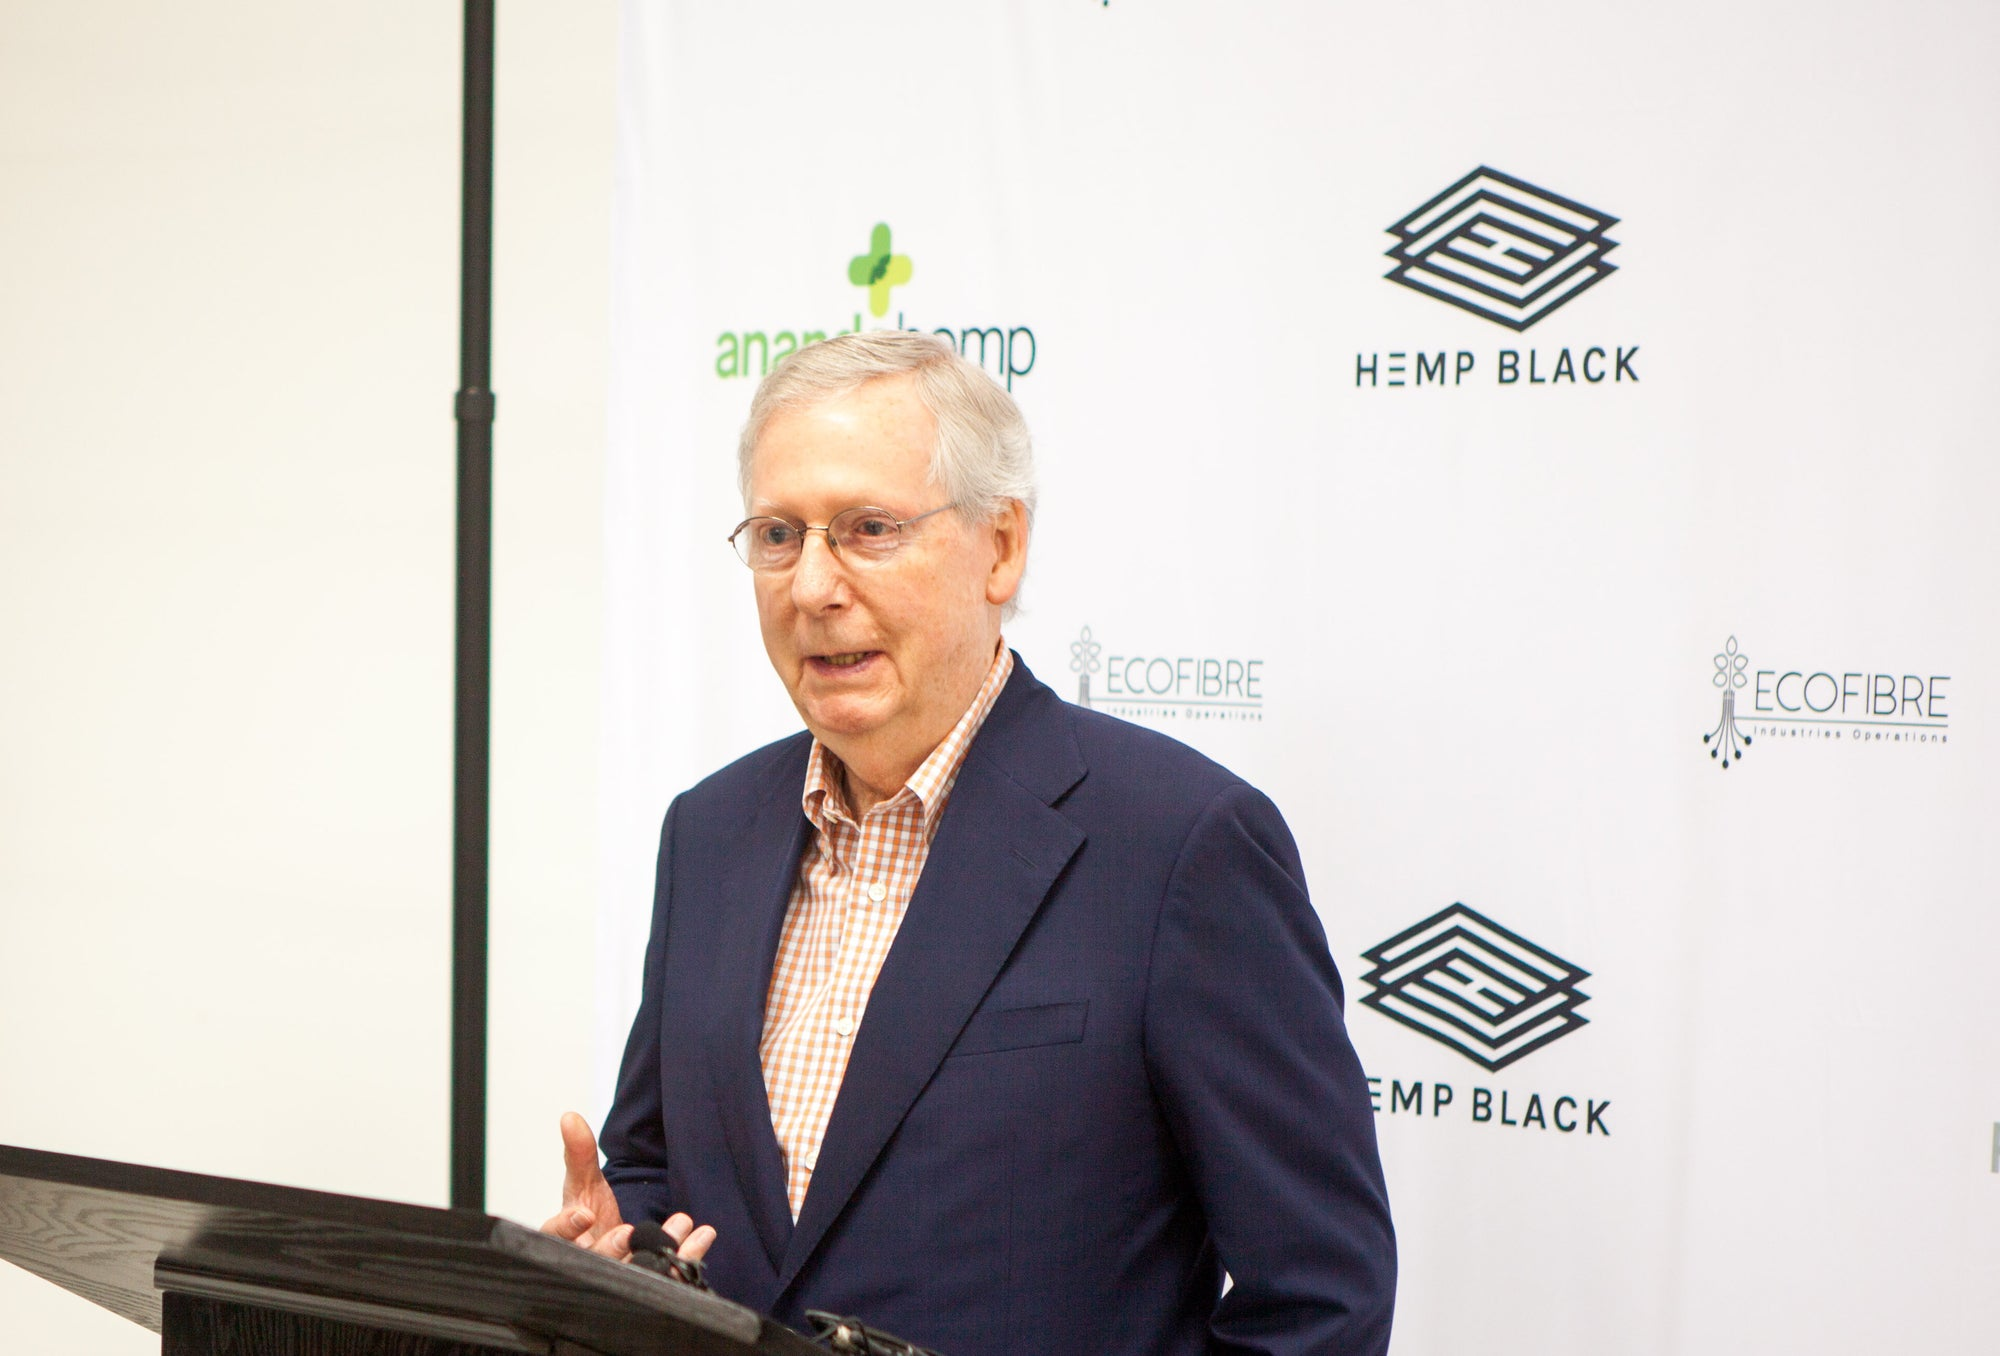 Senator McConnell Visits the Ananda Hemp Farm